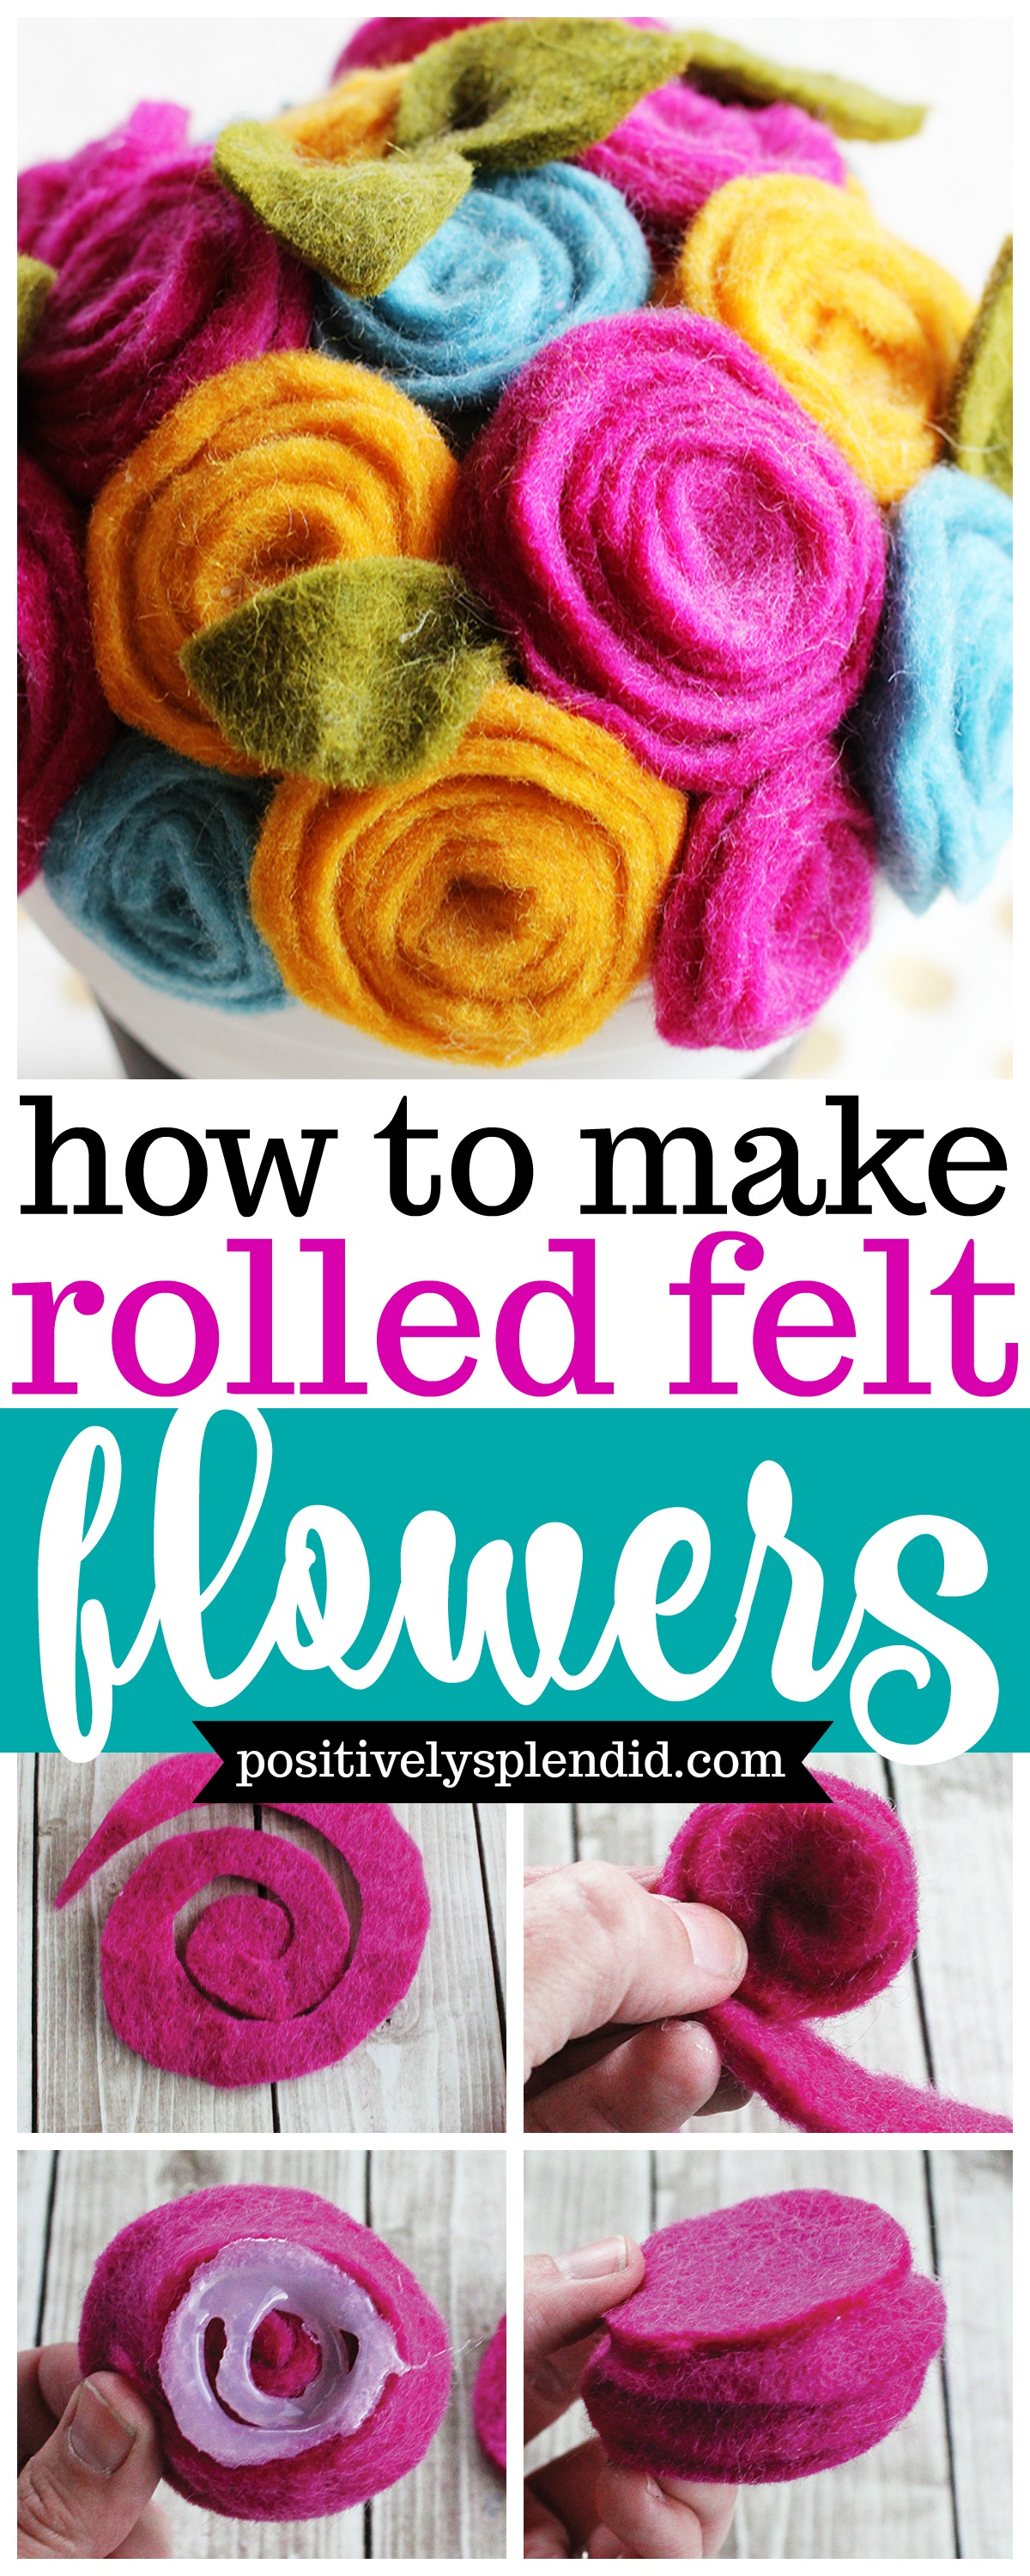 Easy Rolled Felt Flower Tutorial - Felt flowers perfect for wreaths, headbands and more!